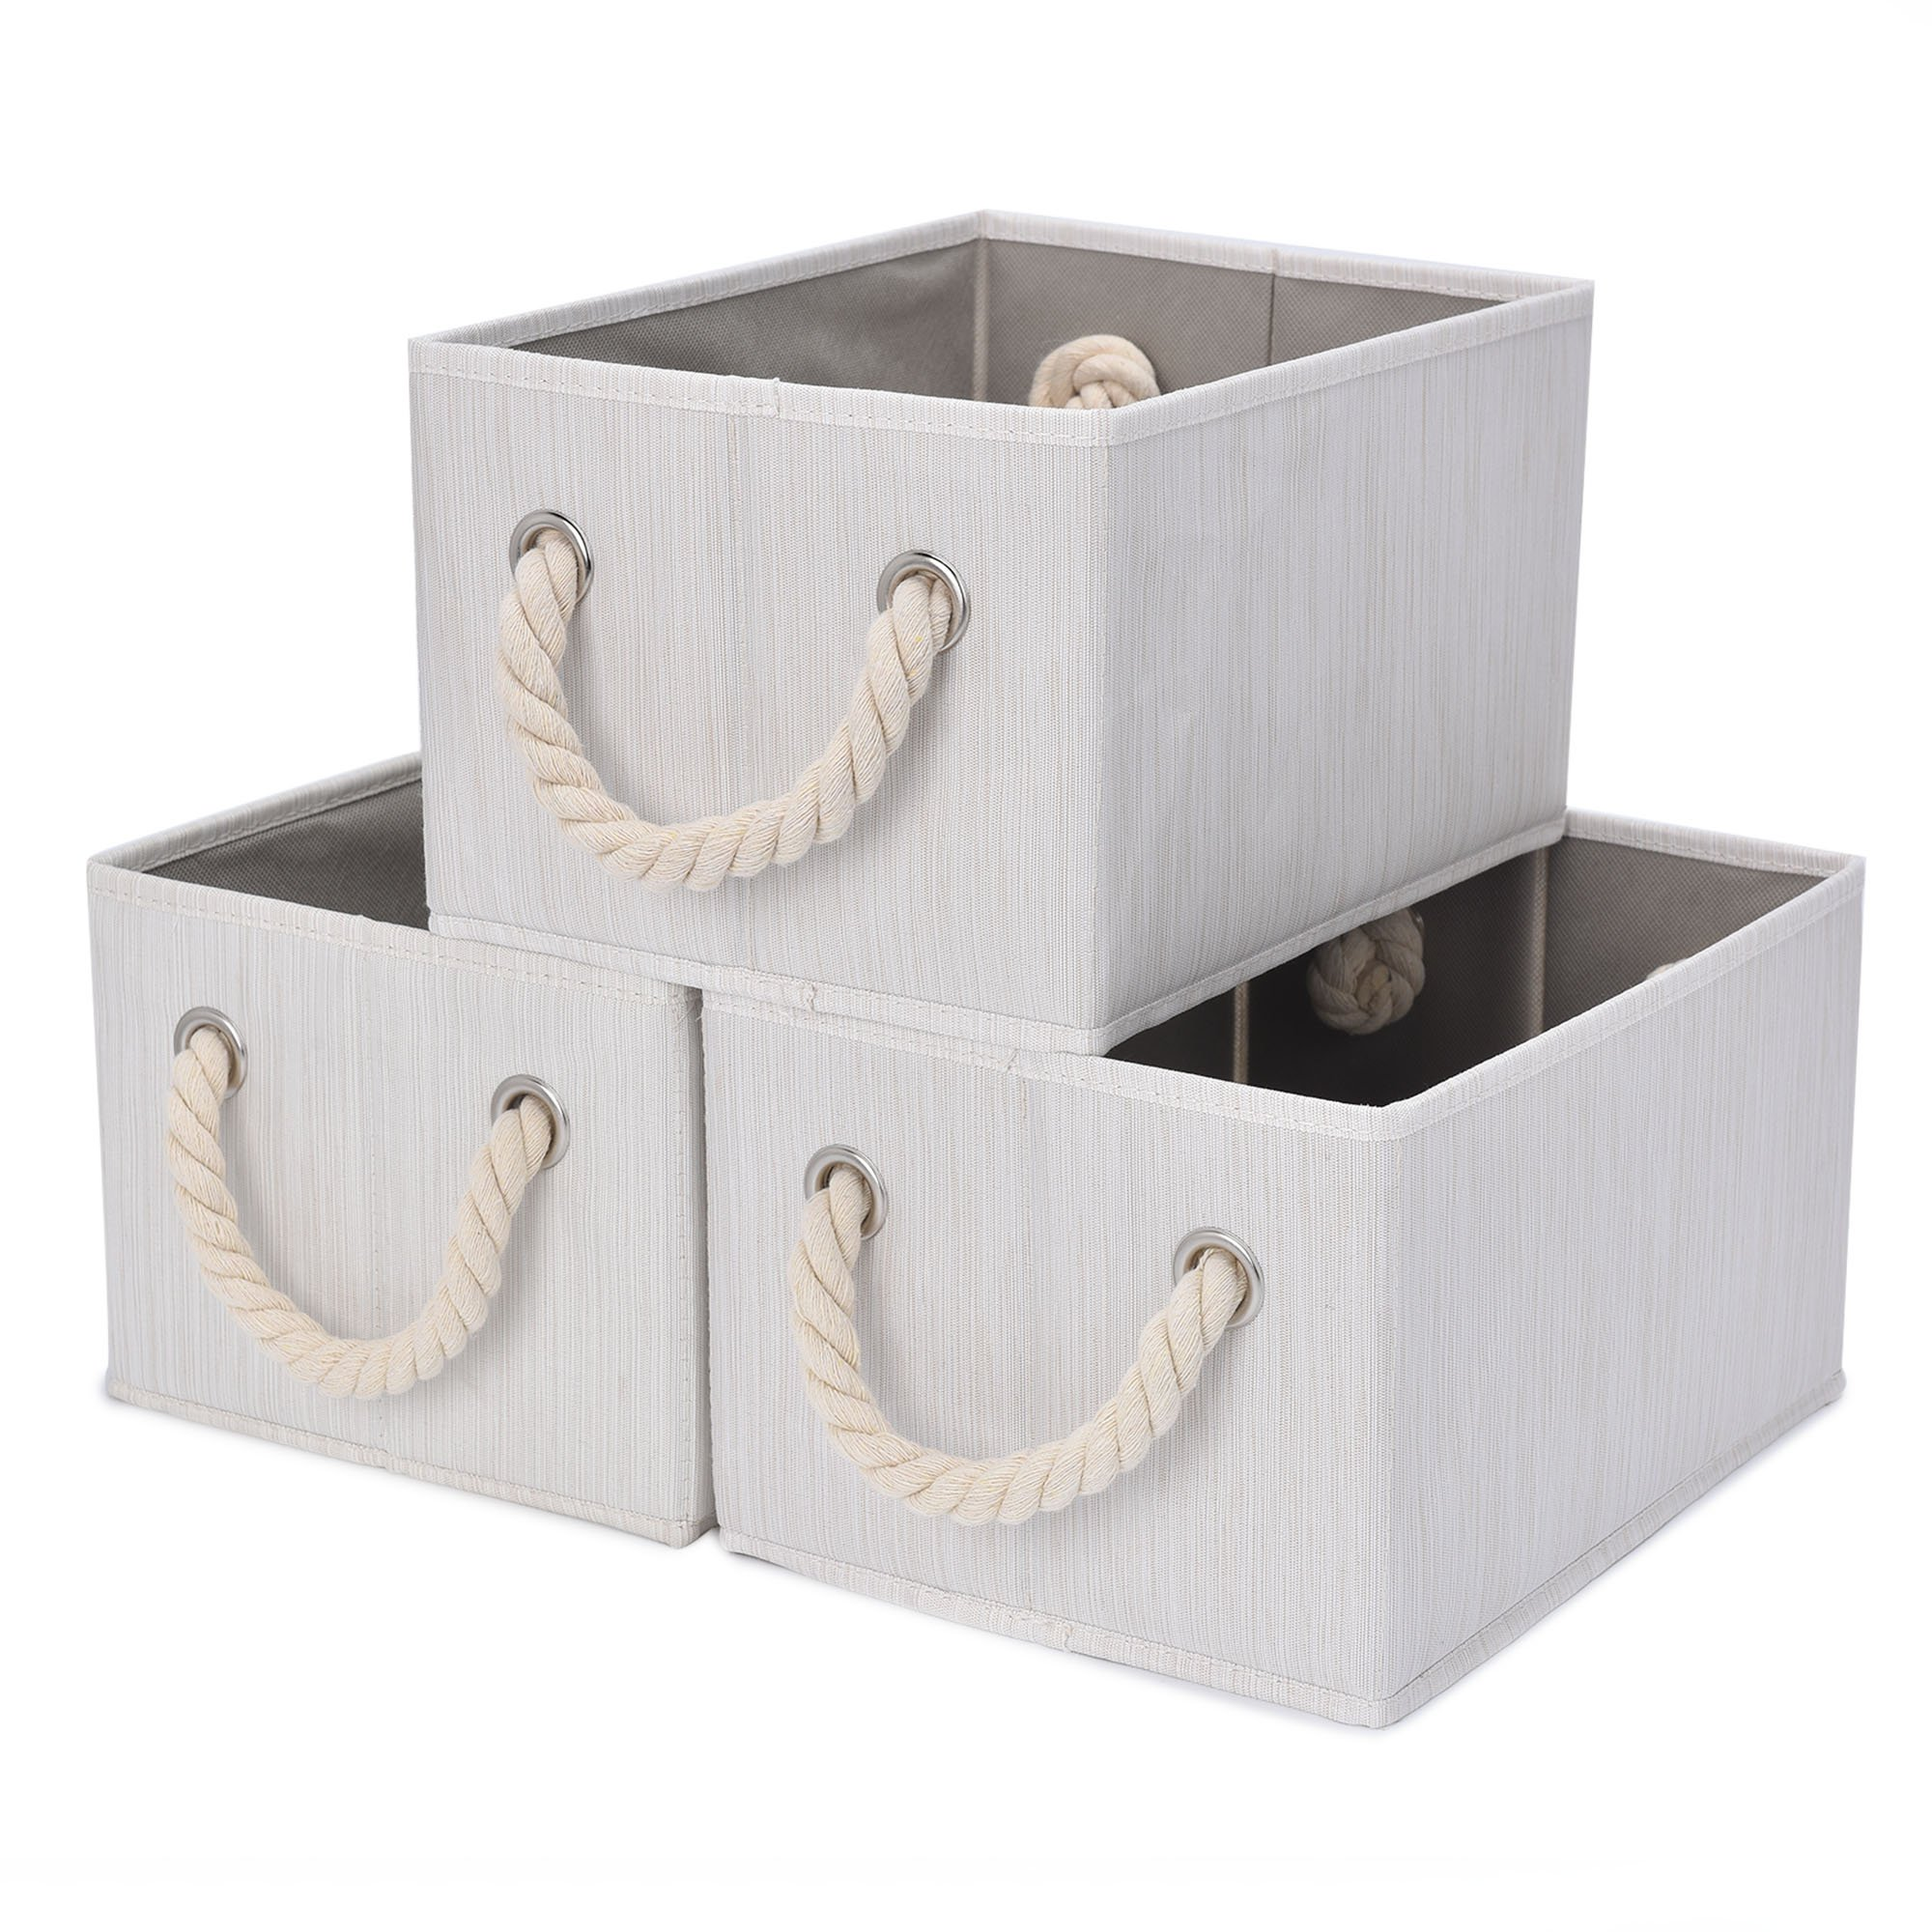 StorageWorks Storage Bins Closet with Cotton Rope Handles, Foldable Storage Basket, White, Bamboo Style, 3-Pack, Jumbo, 17.1(L) x12.0(W) x10.2(H) inches